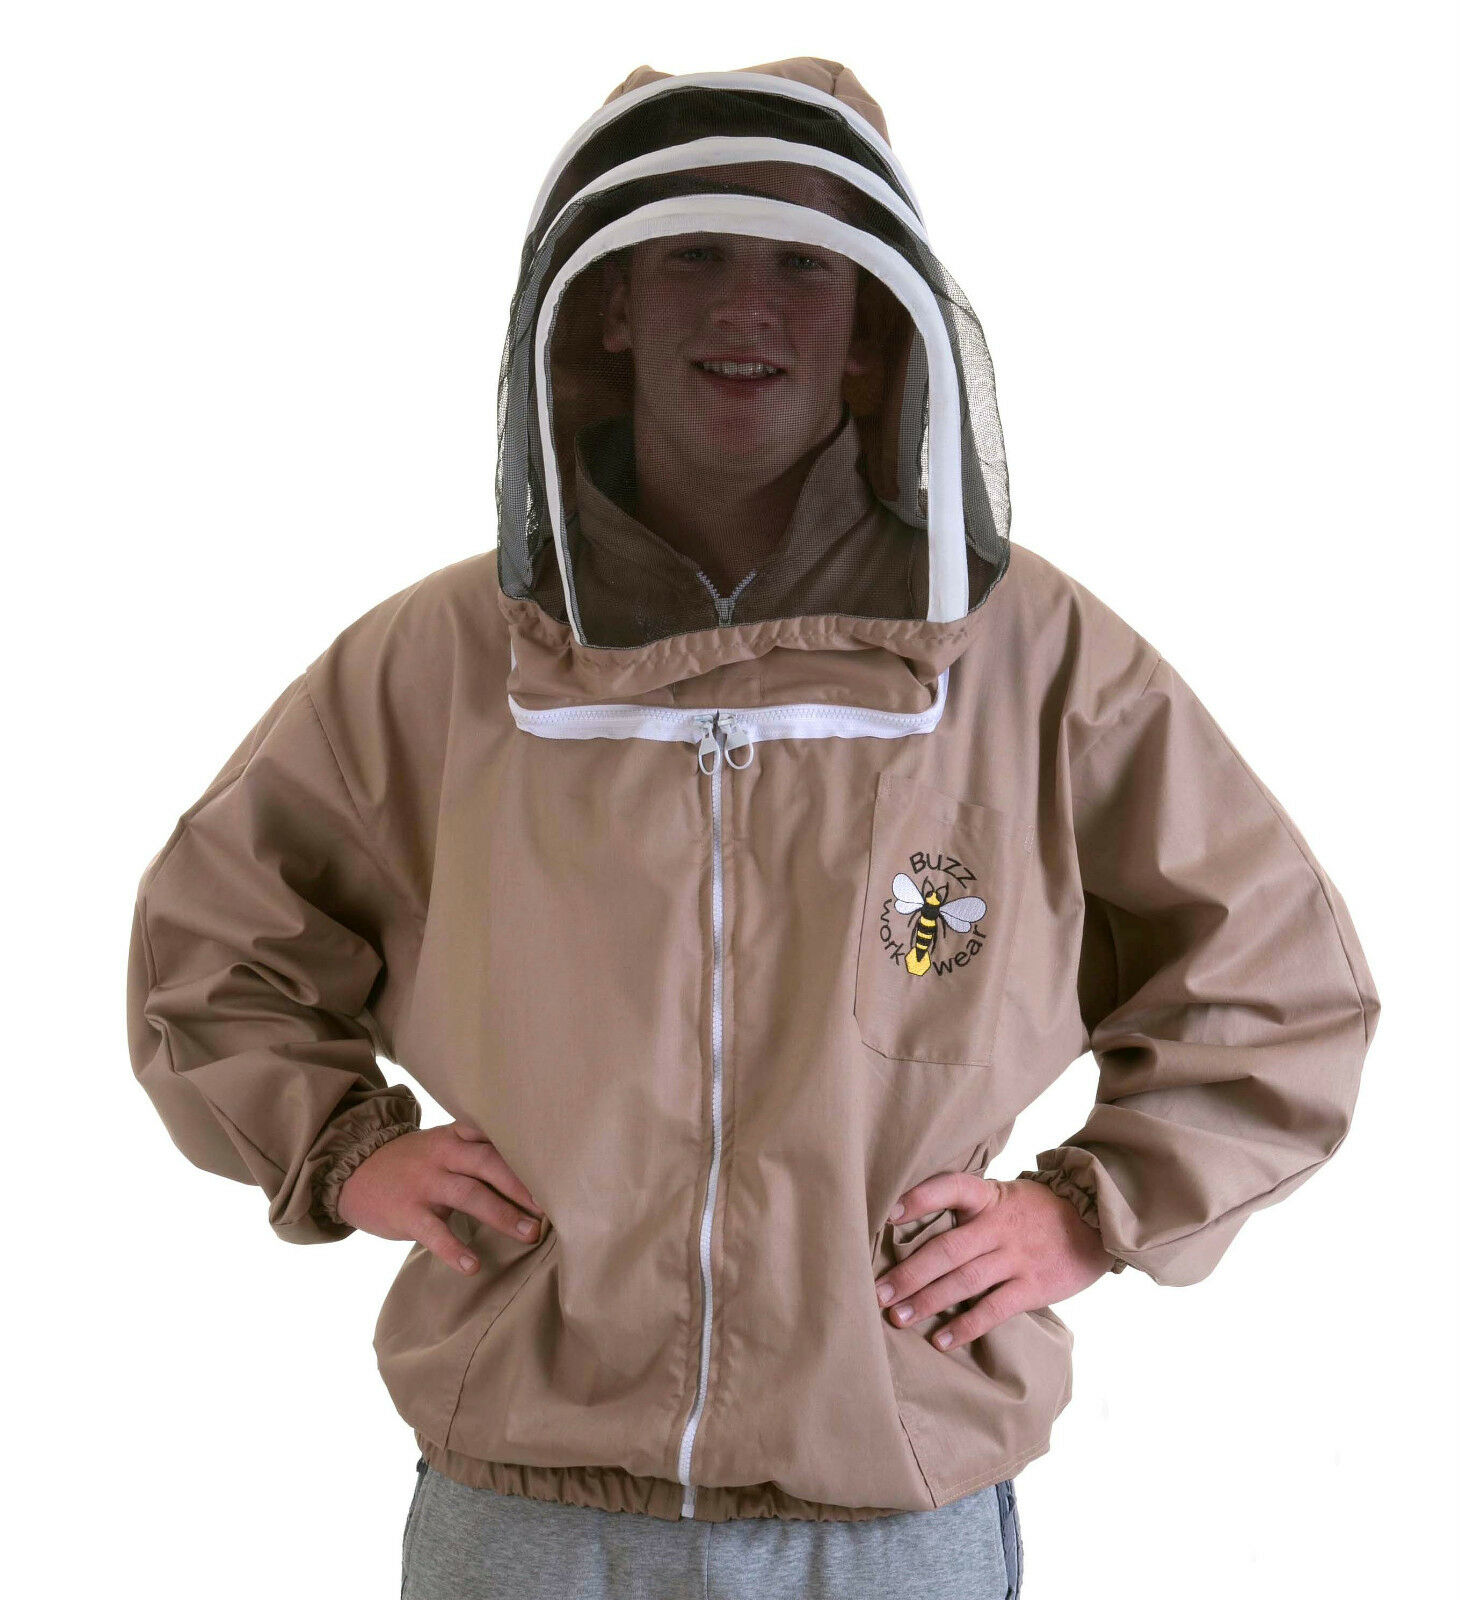 BUZZ Beekeepers BEE JACKET, Cappuccino with fencing hood. Size: 4XL